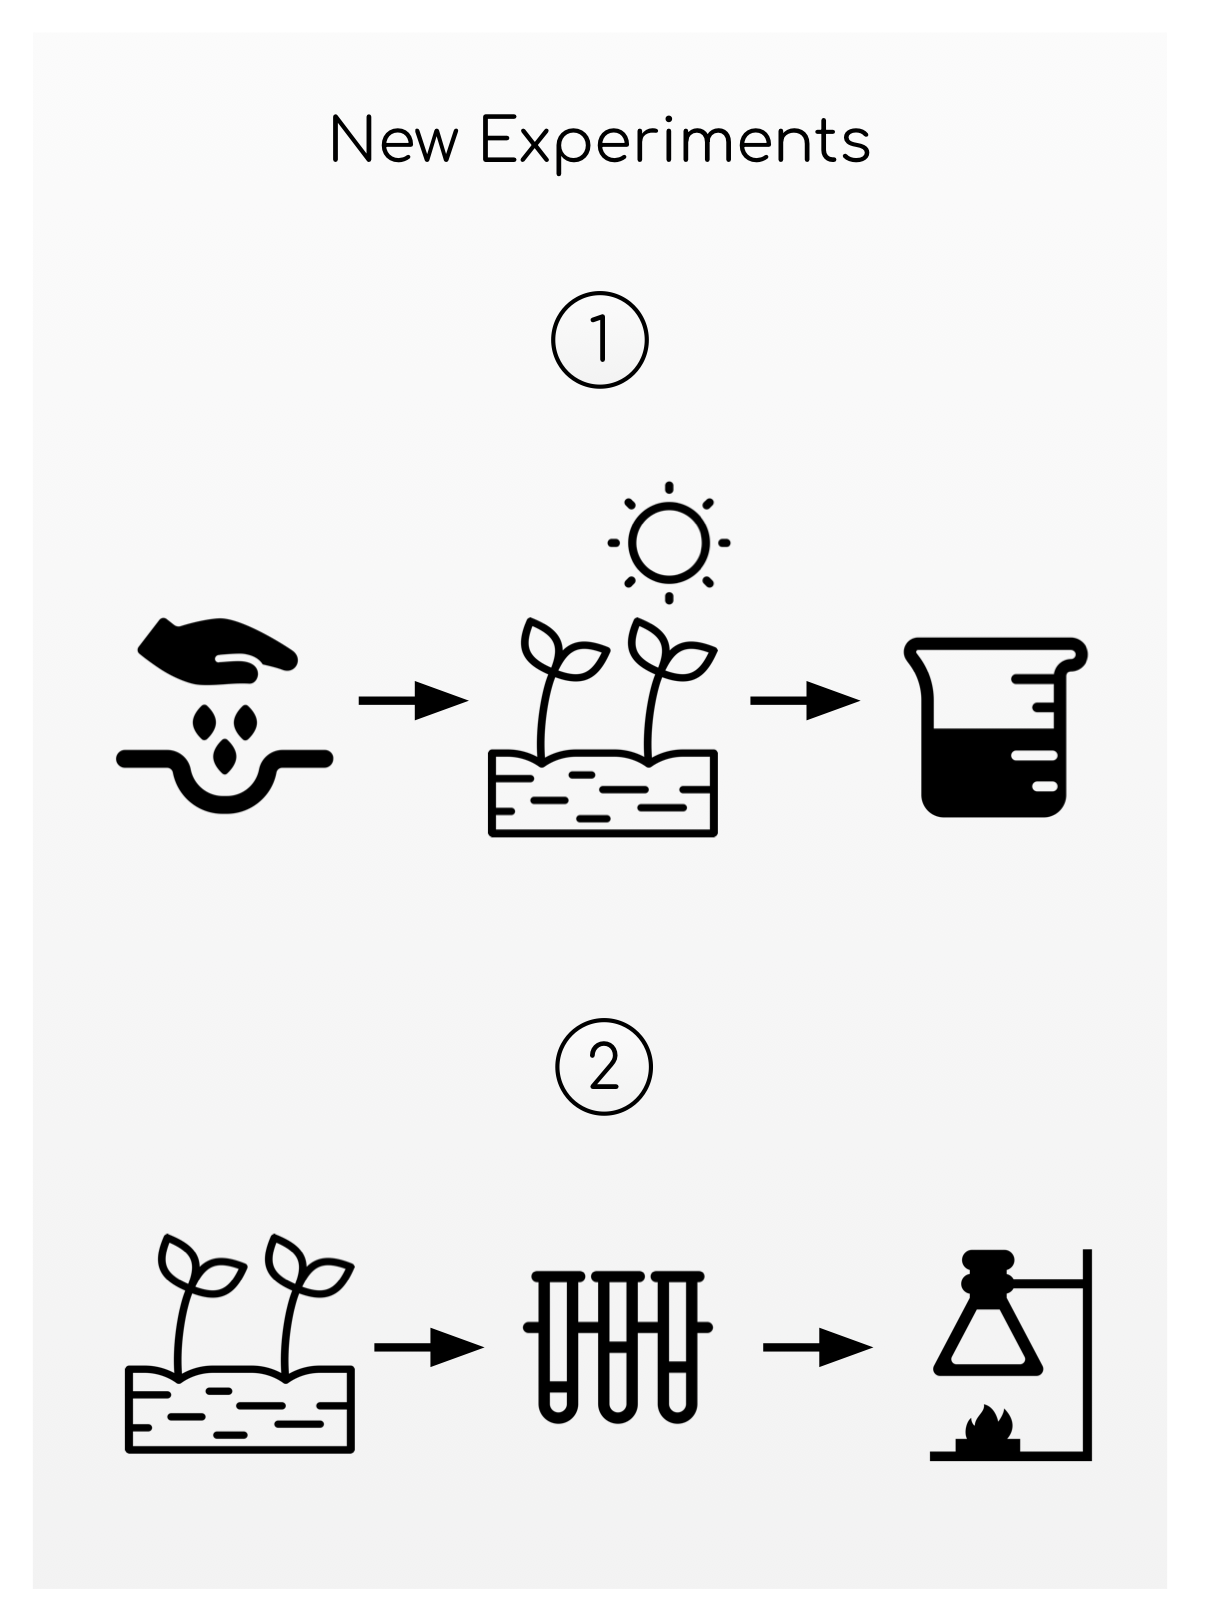 Abstract representation of paper with two methods cartoons of new experiments.